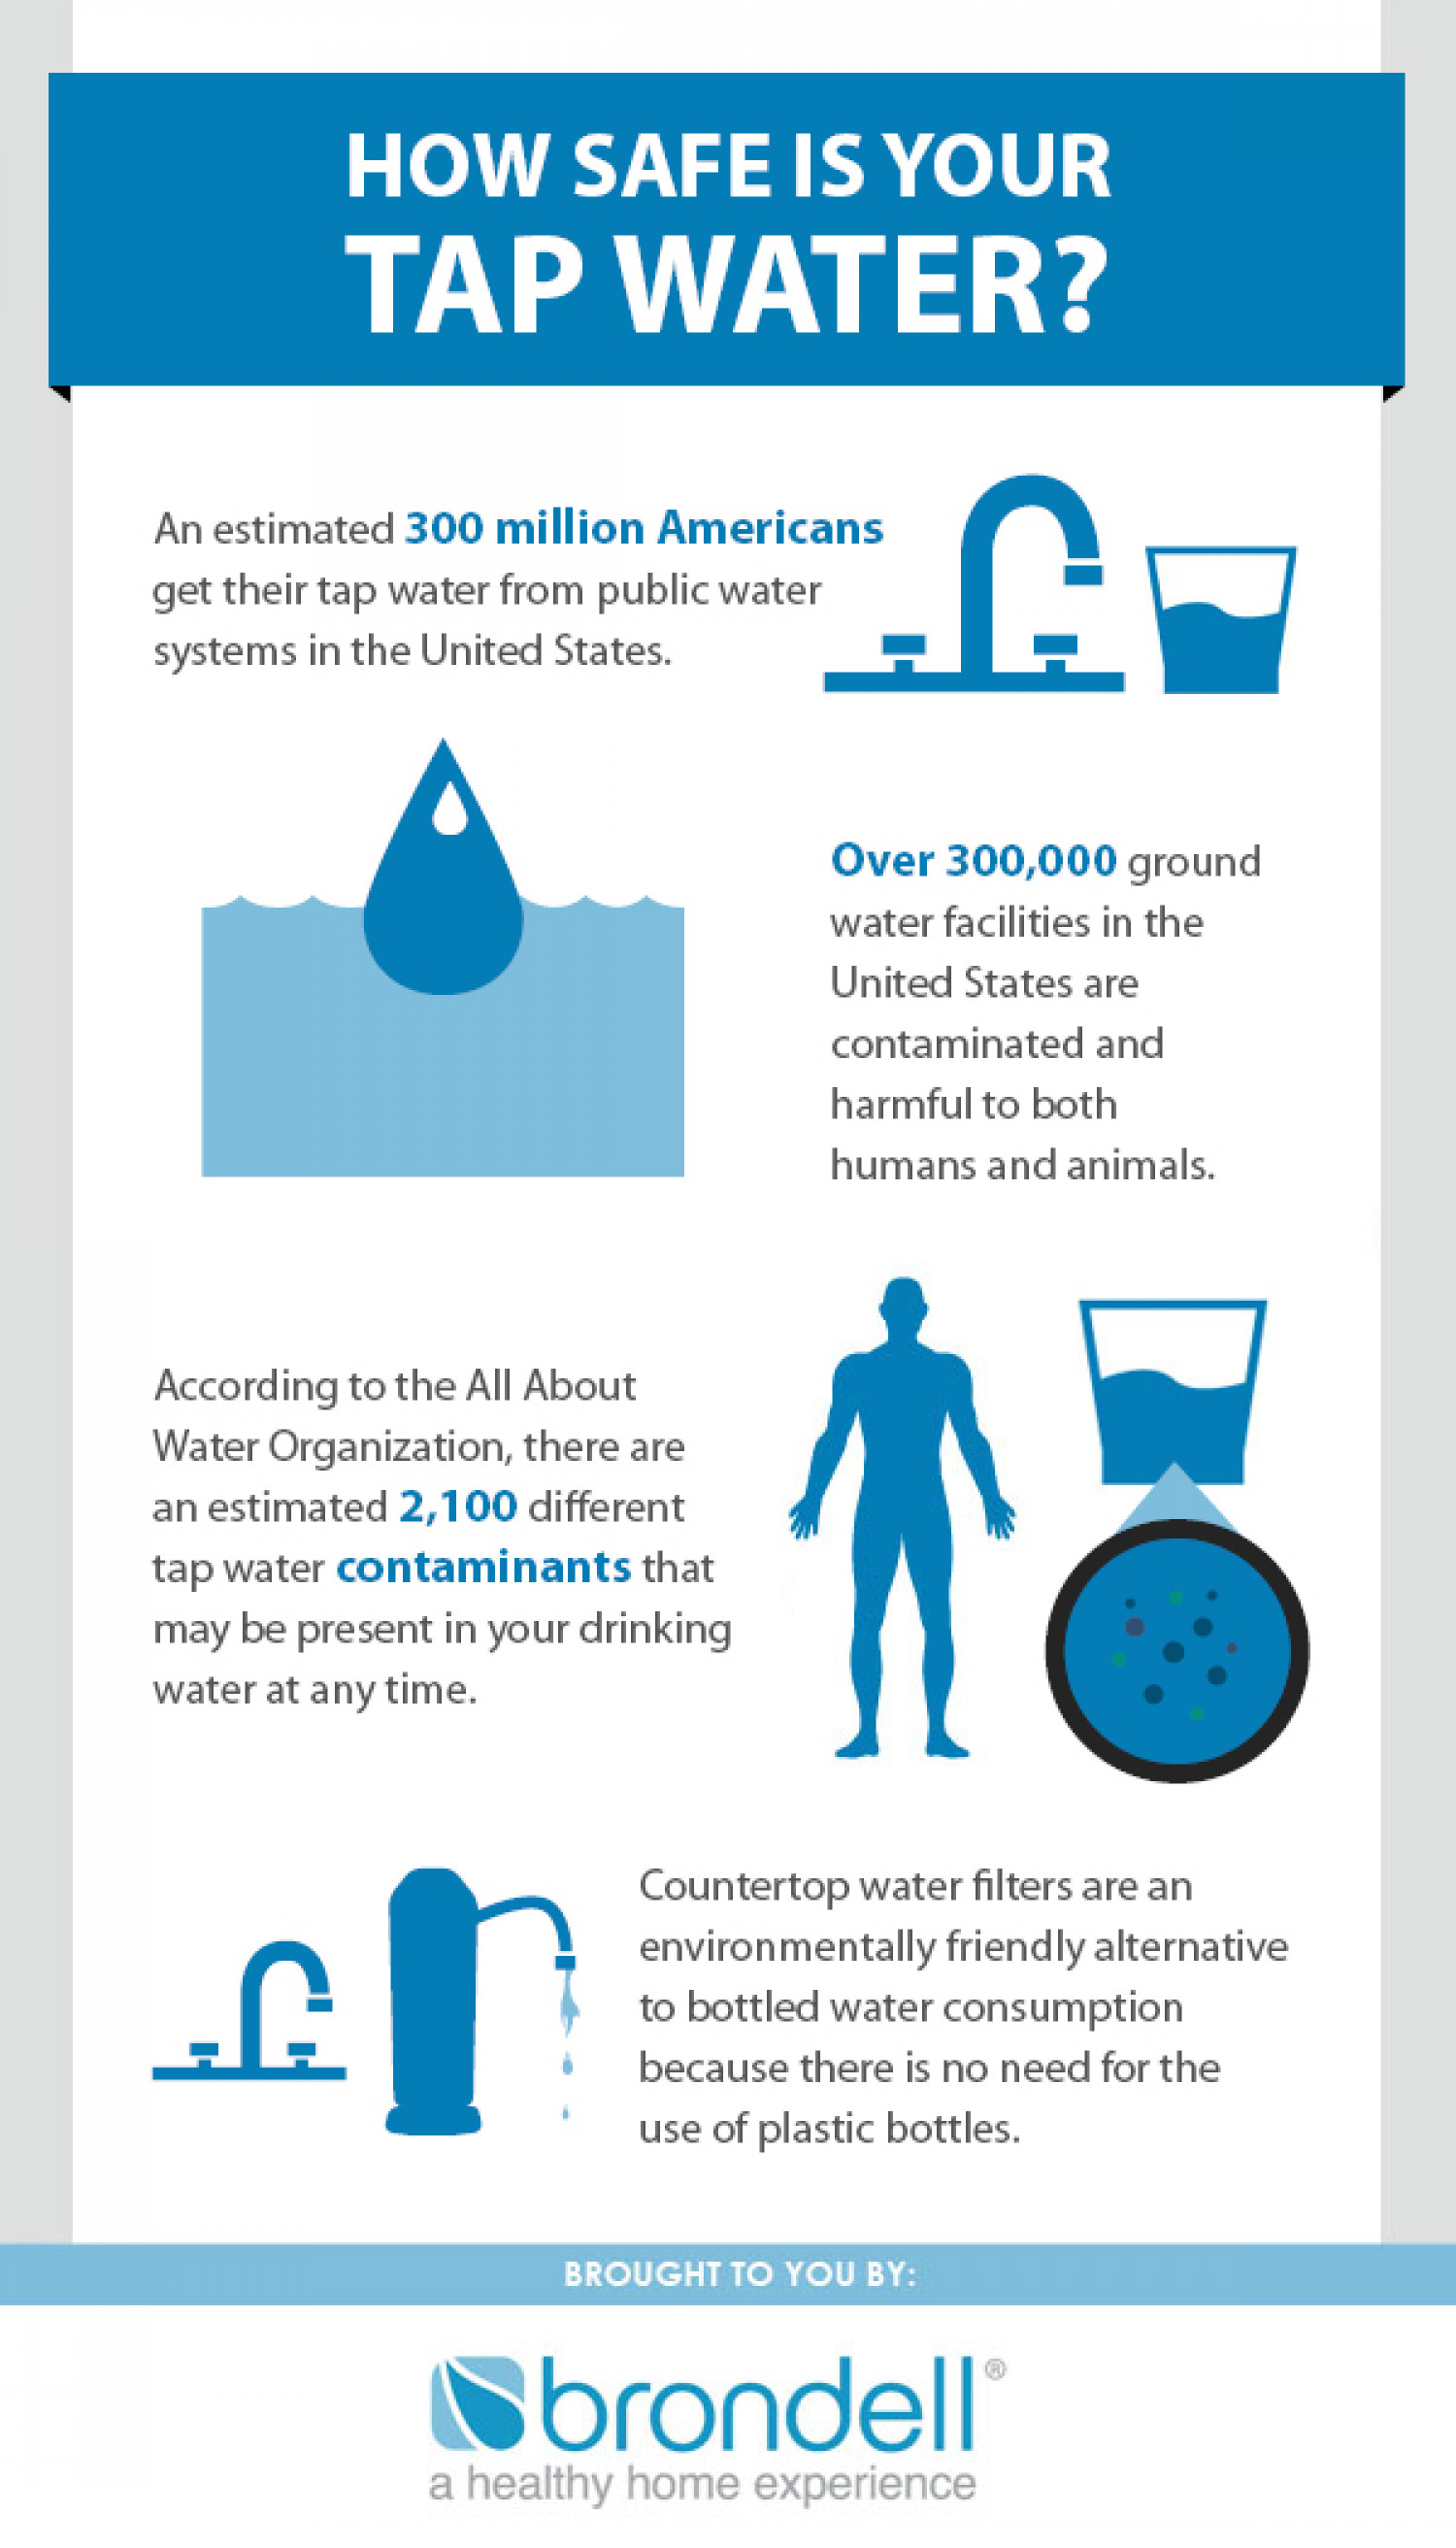 How Safe Is Your Tap Water? Infographic